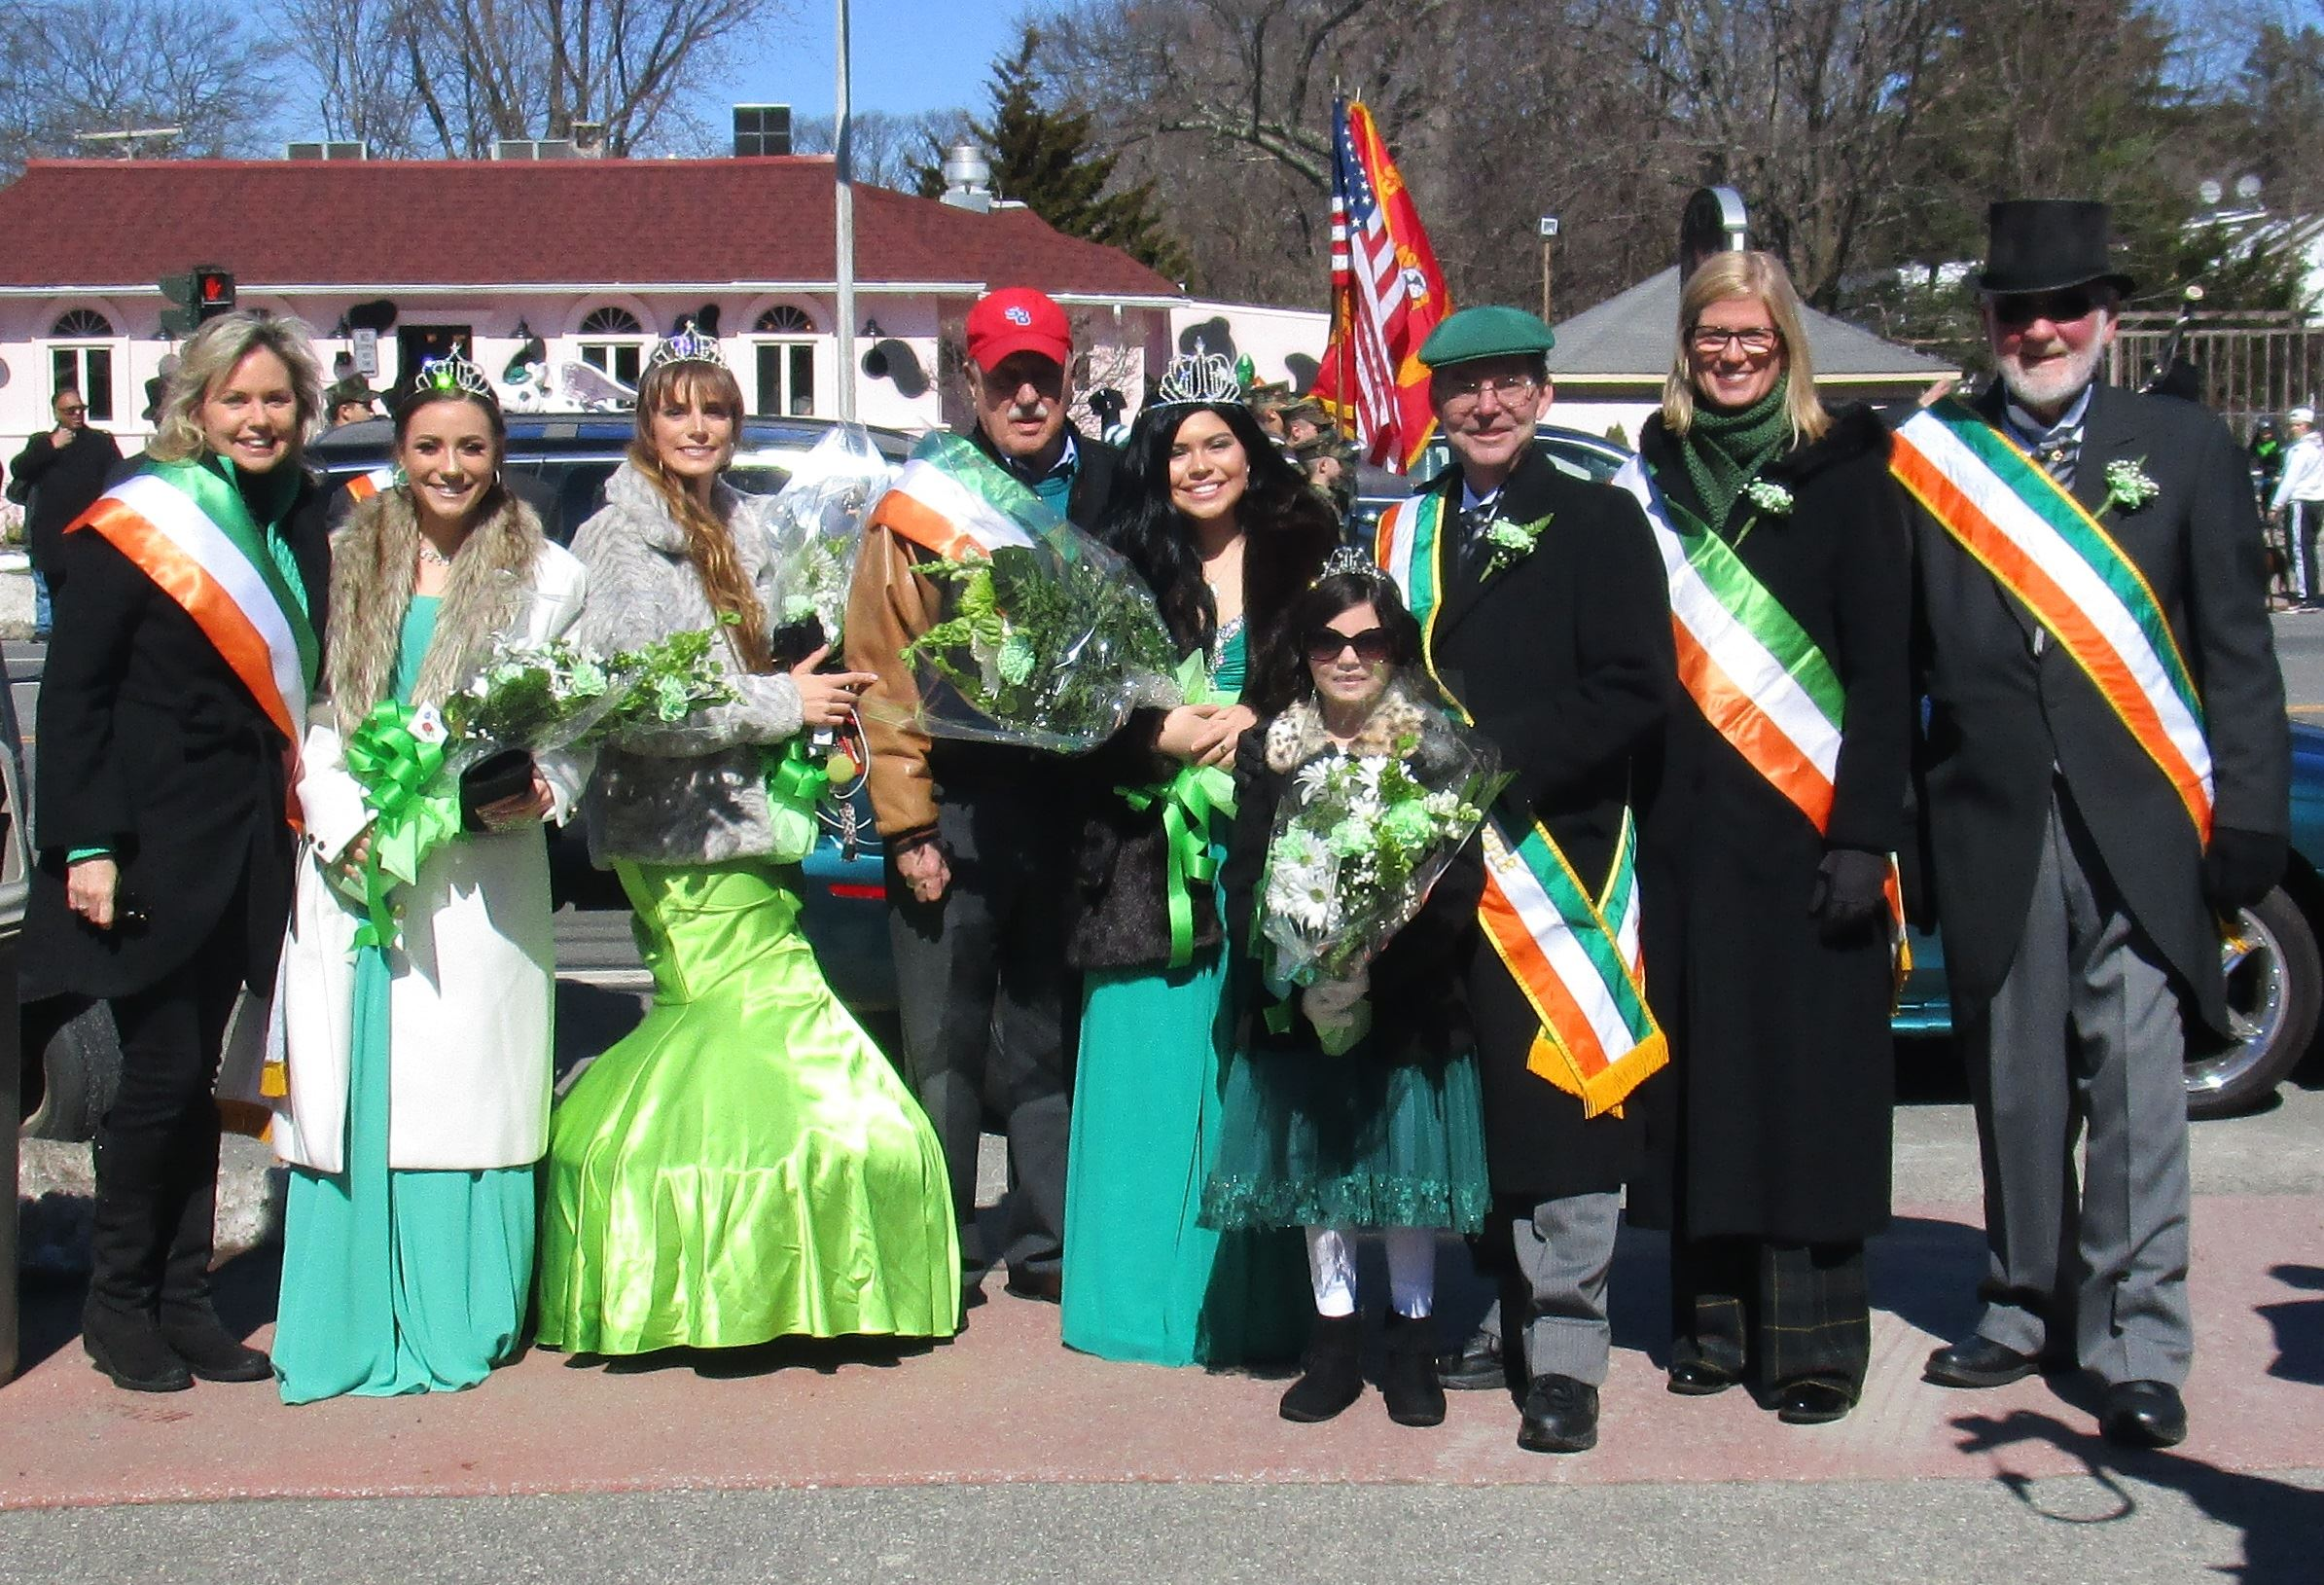 Legislator Anker with local elected officials at the St. Patrick's Day Parade.